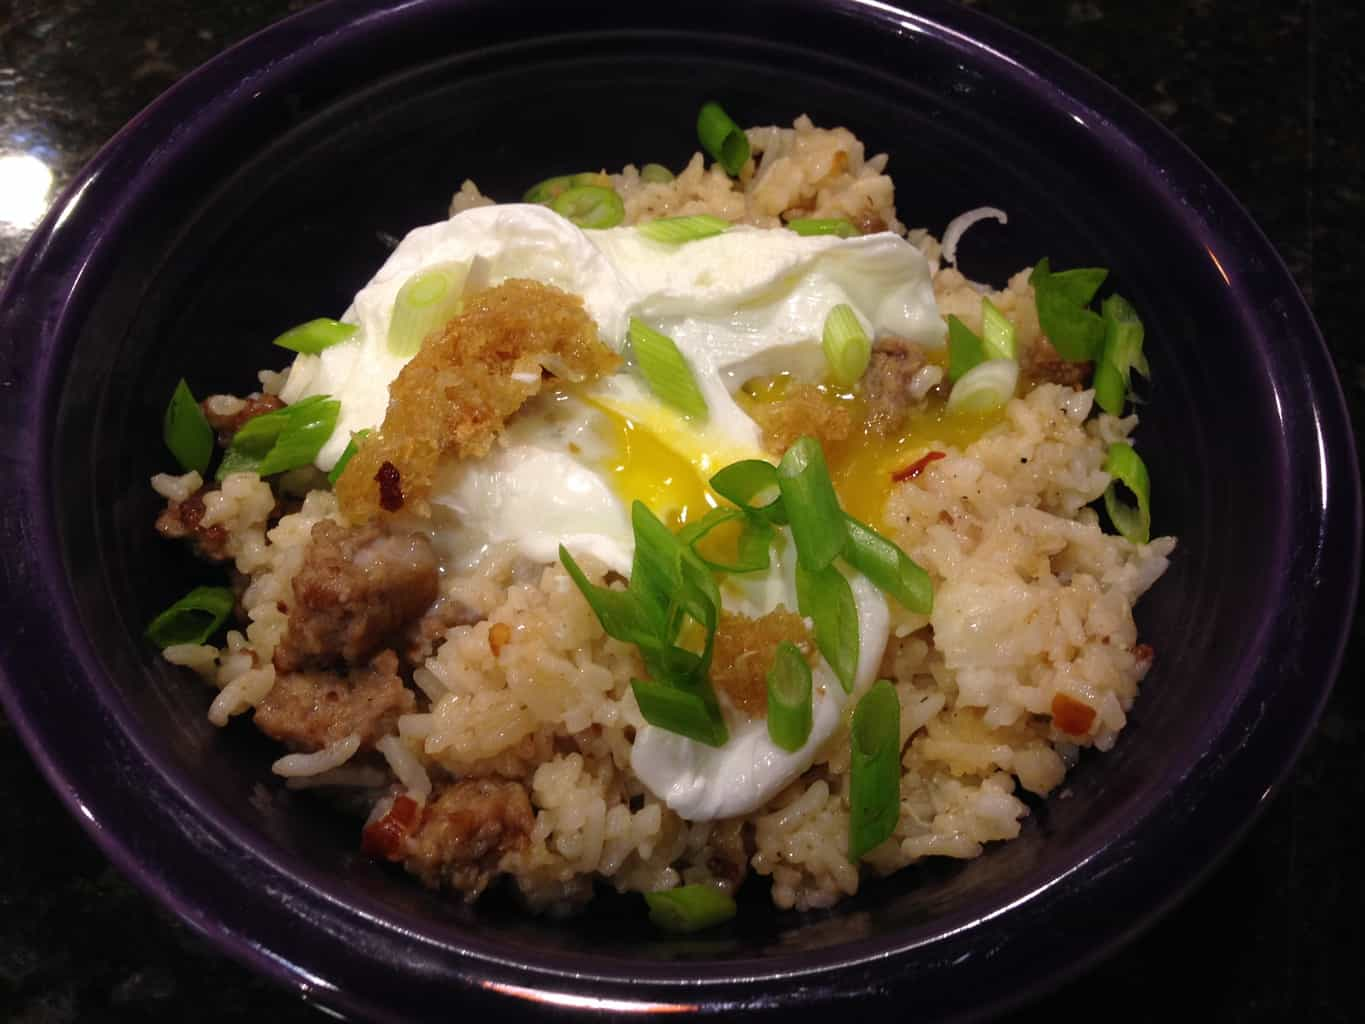 Variations on Gluten-Free Fried Rice